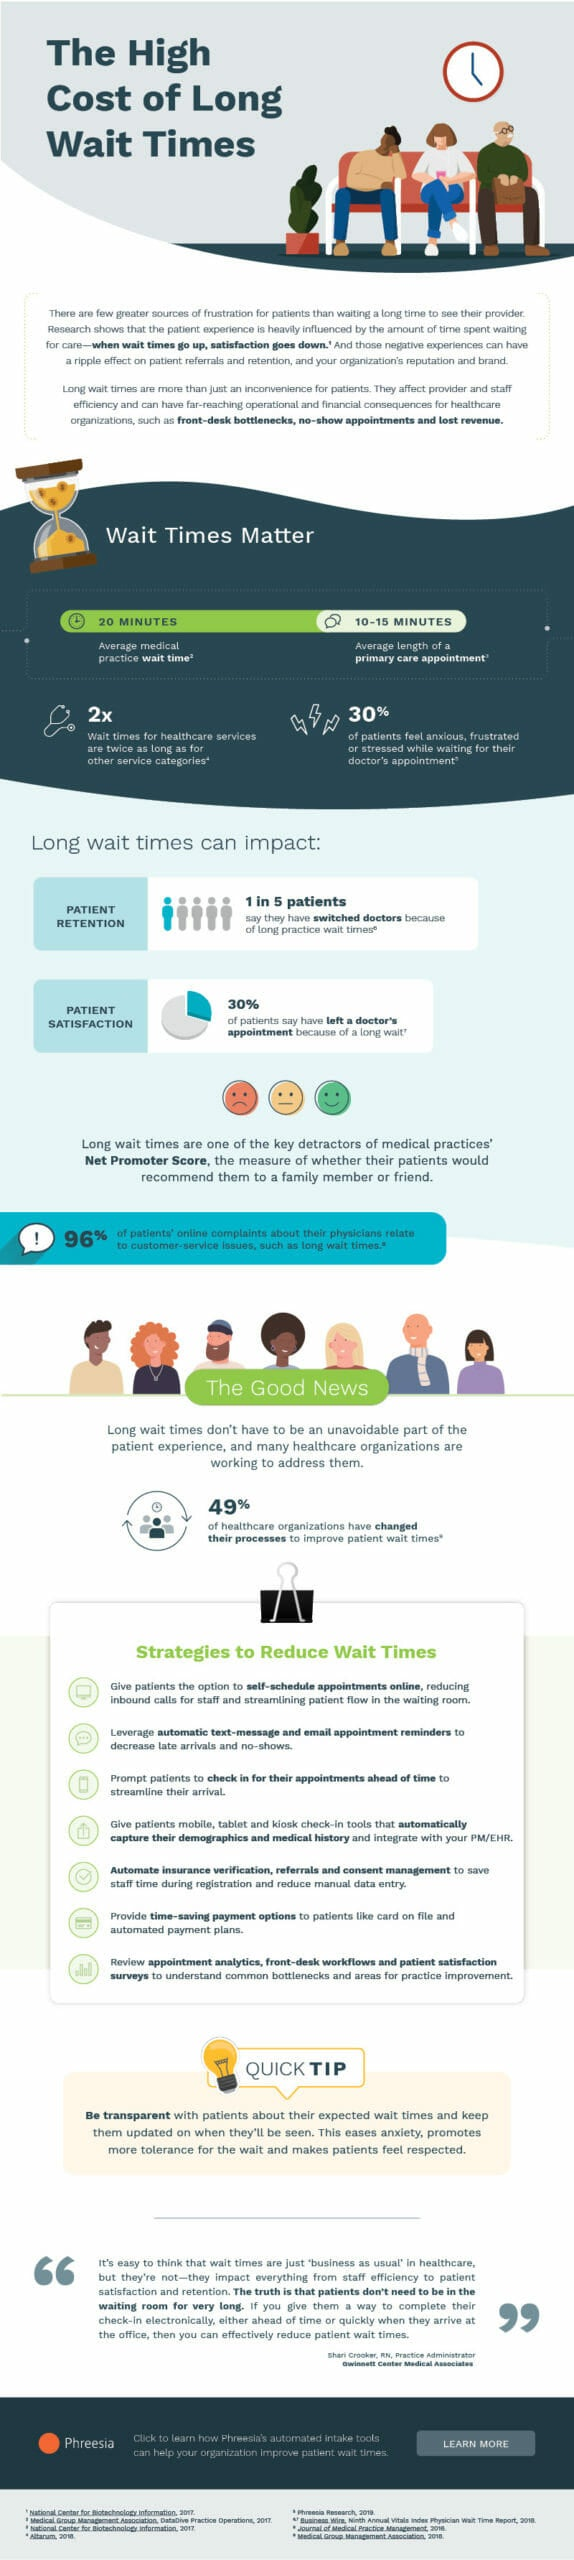 infographic showing the hight cost of wait times